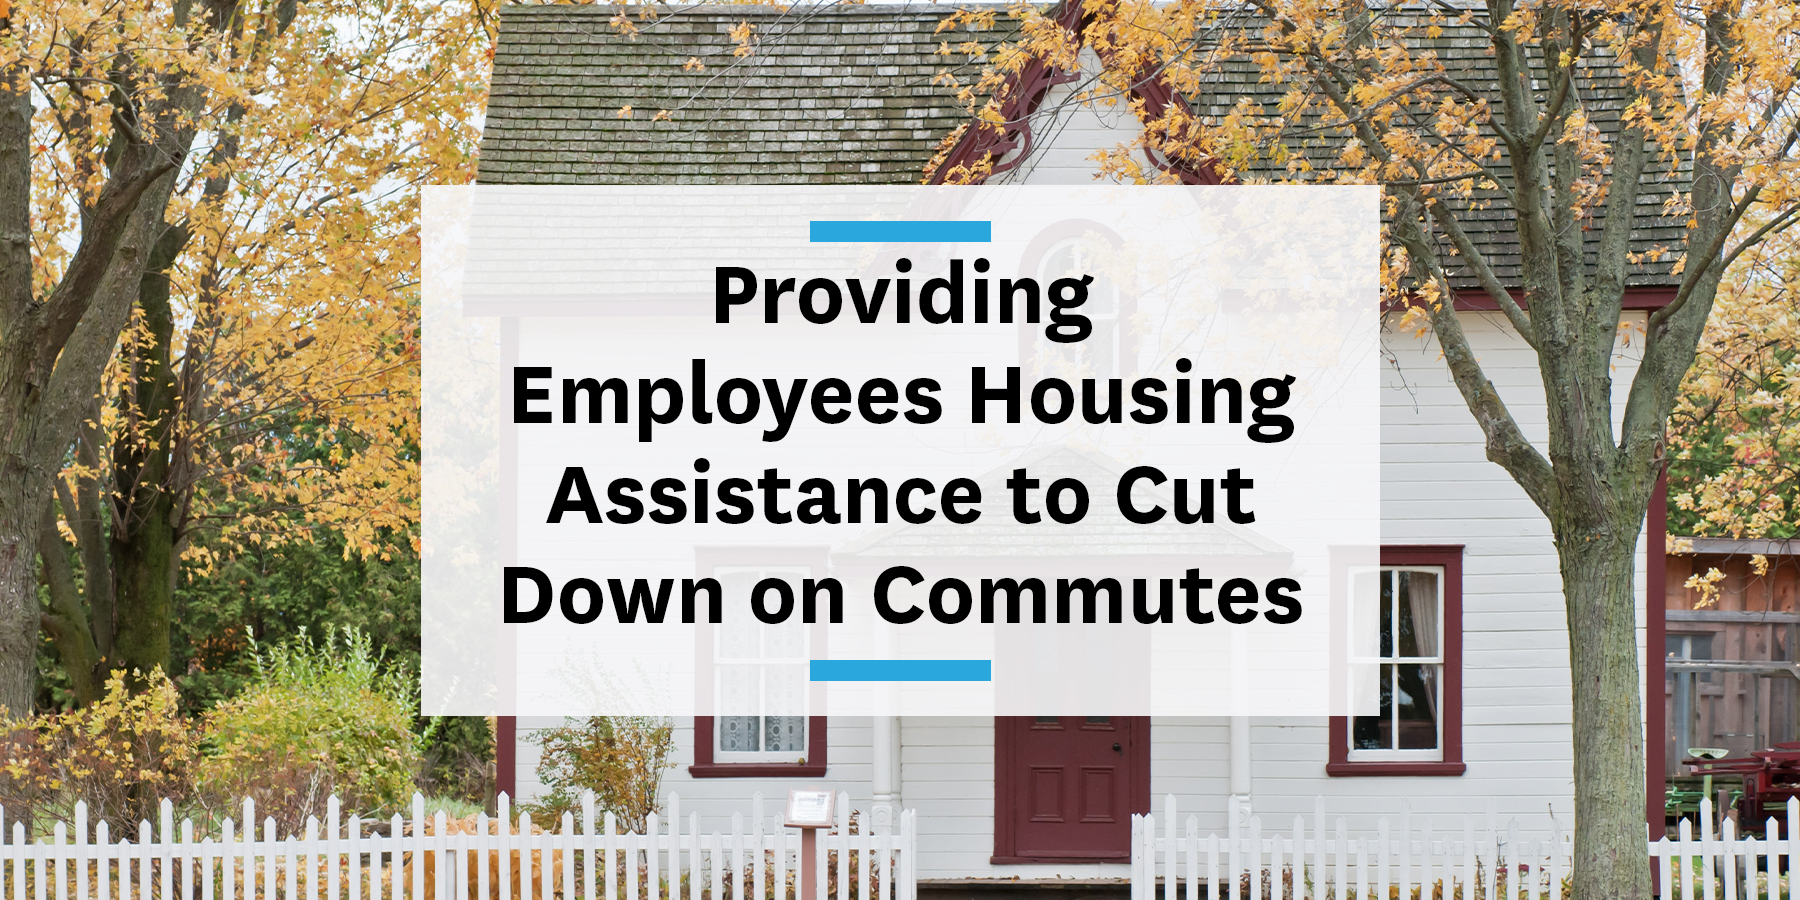 Housing assistance and commuter benefits to help employees